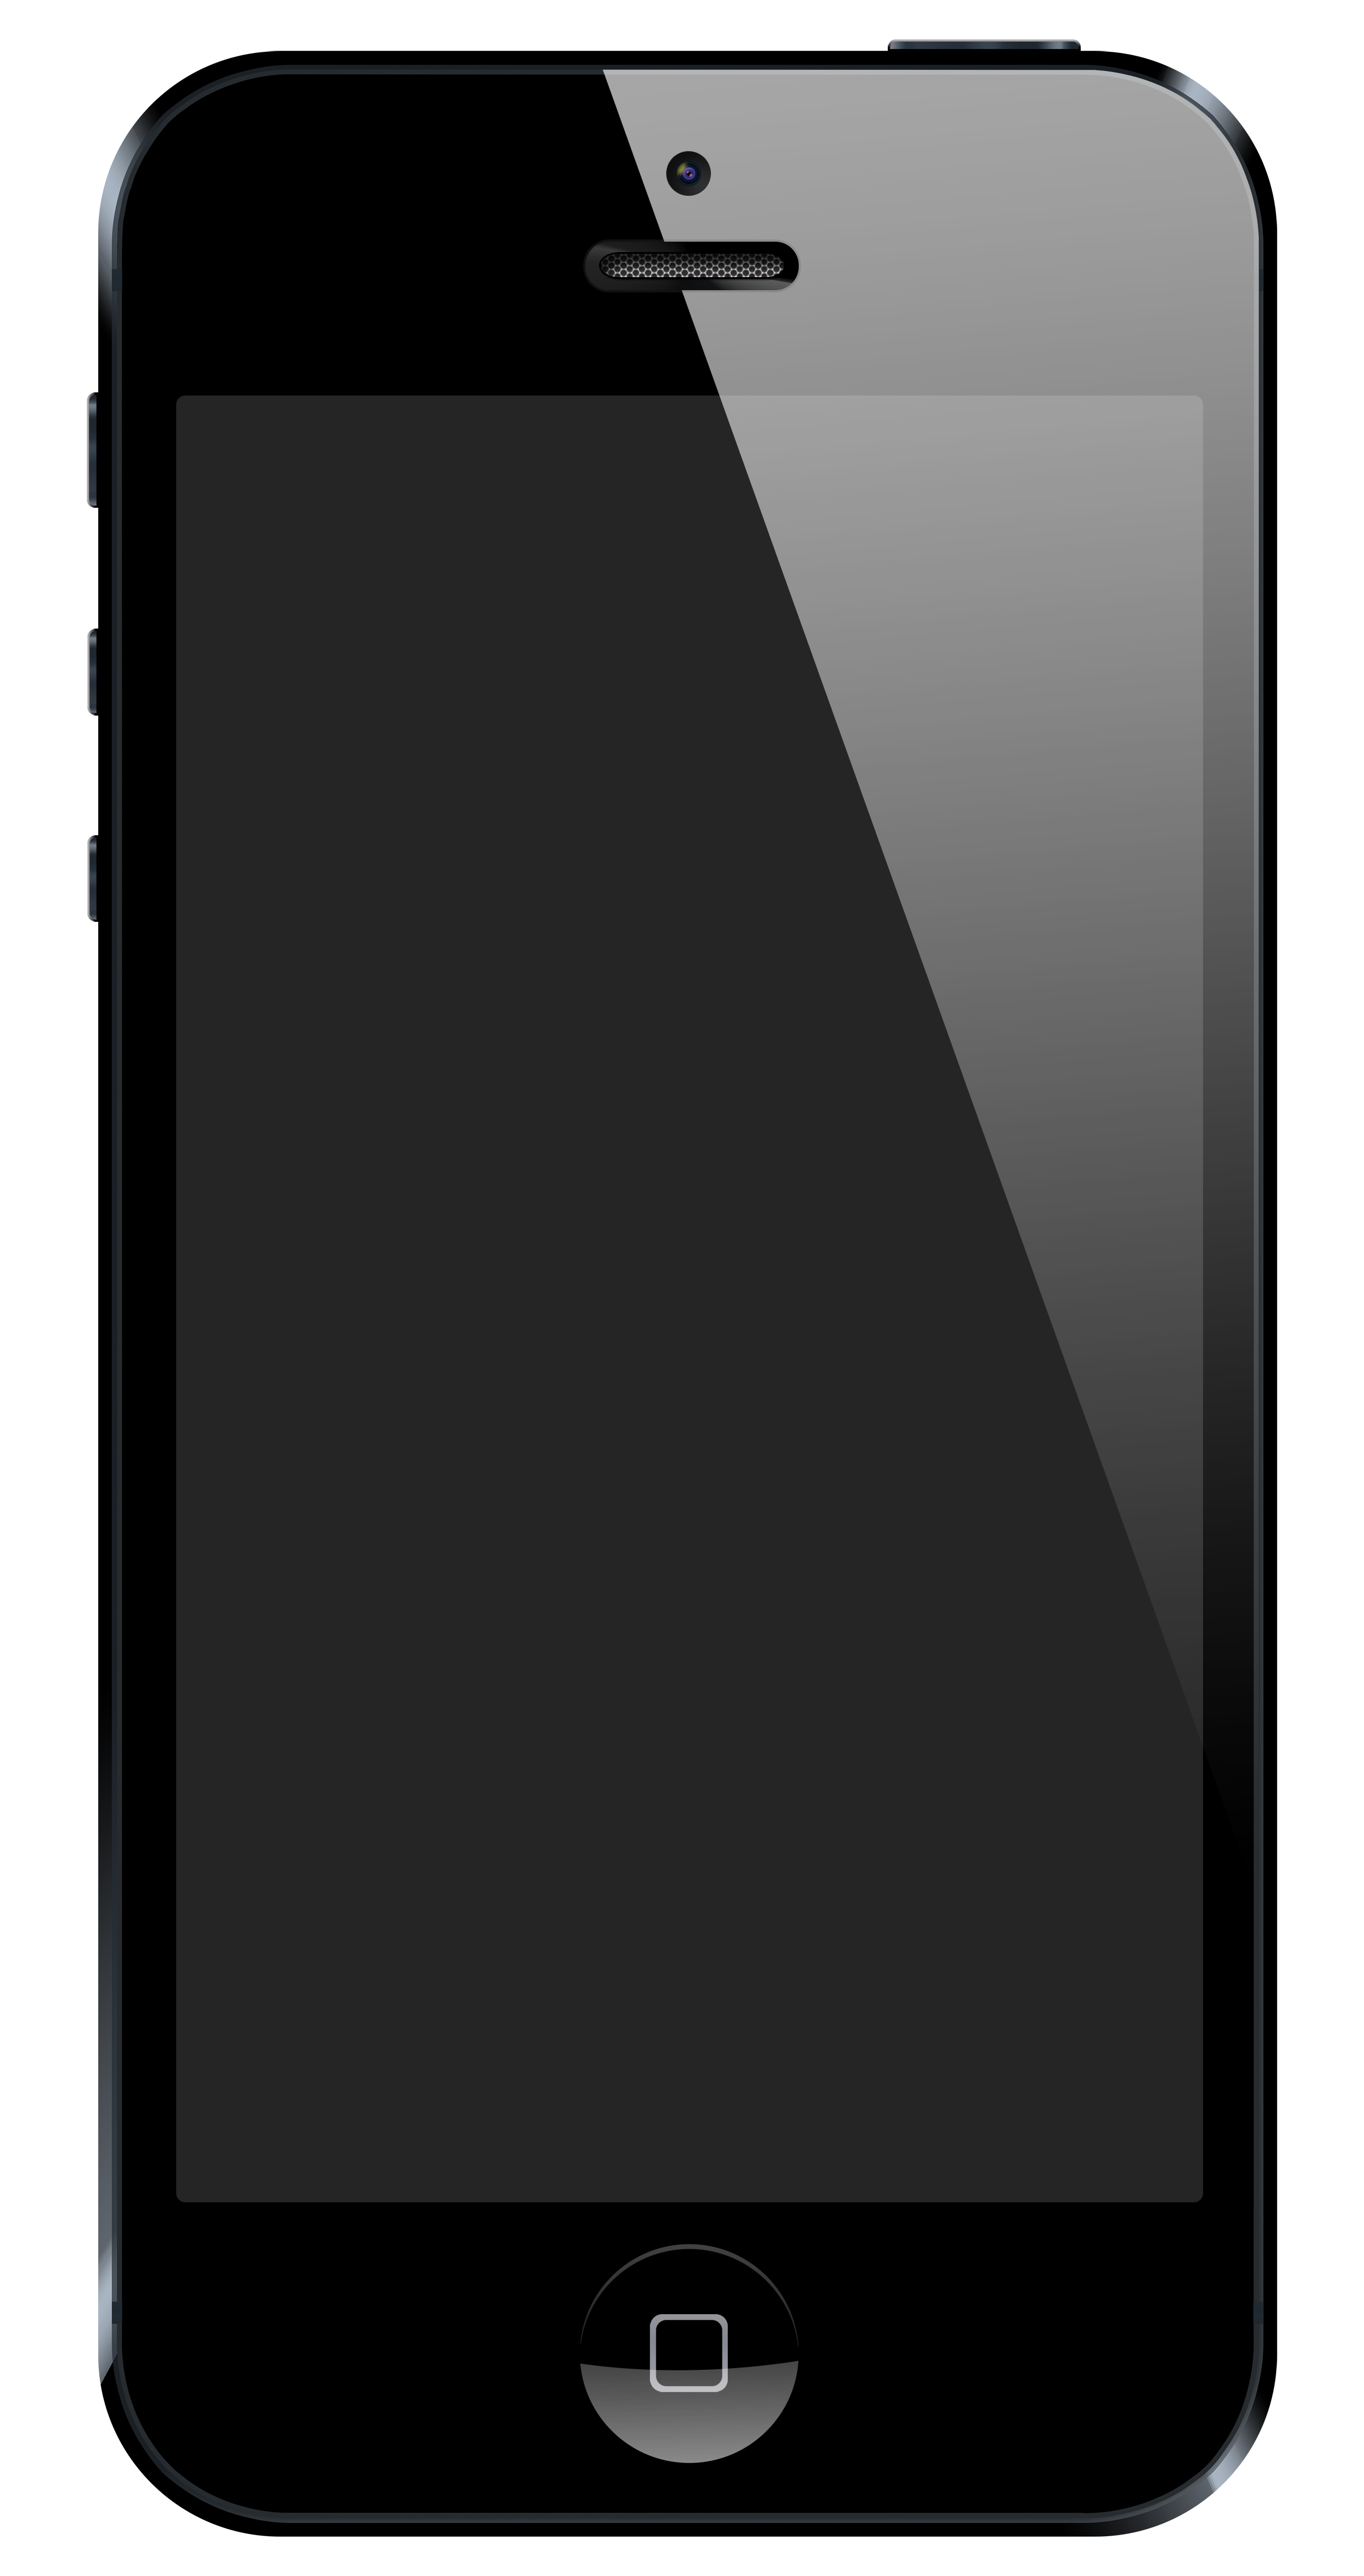 Iphone 5 real size png image. File wikimedia commons fileiphone